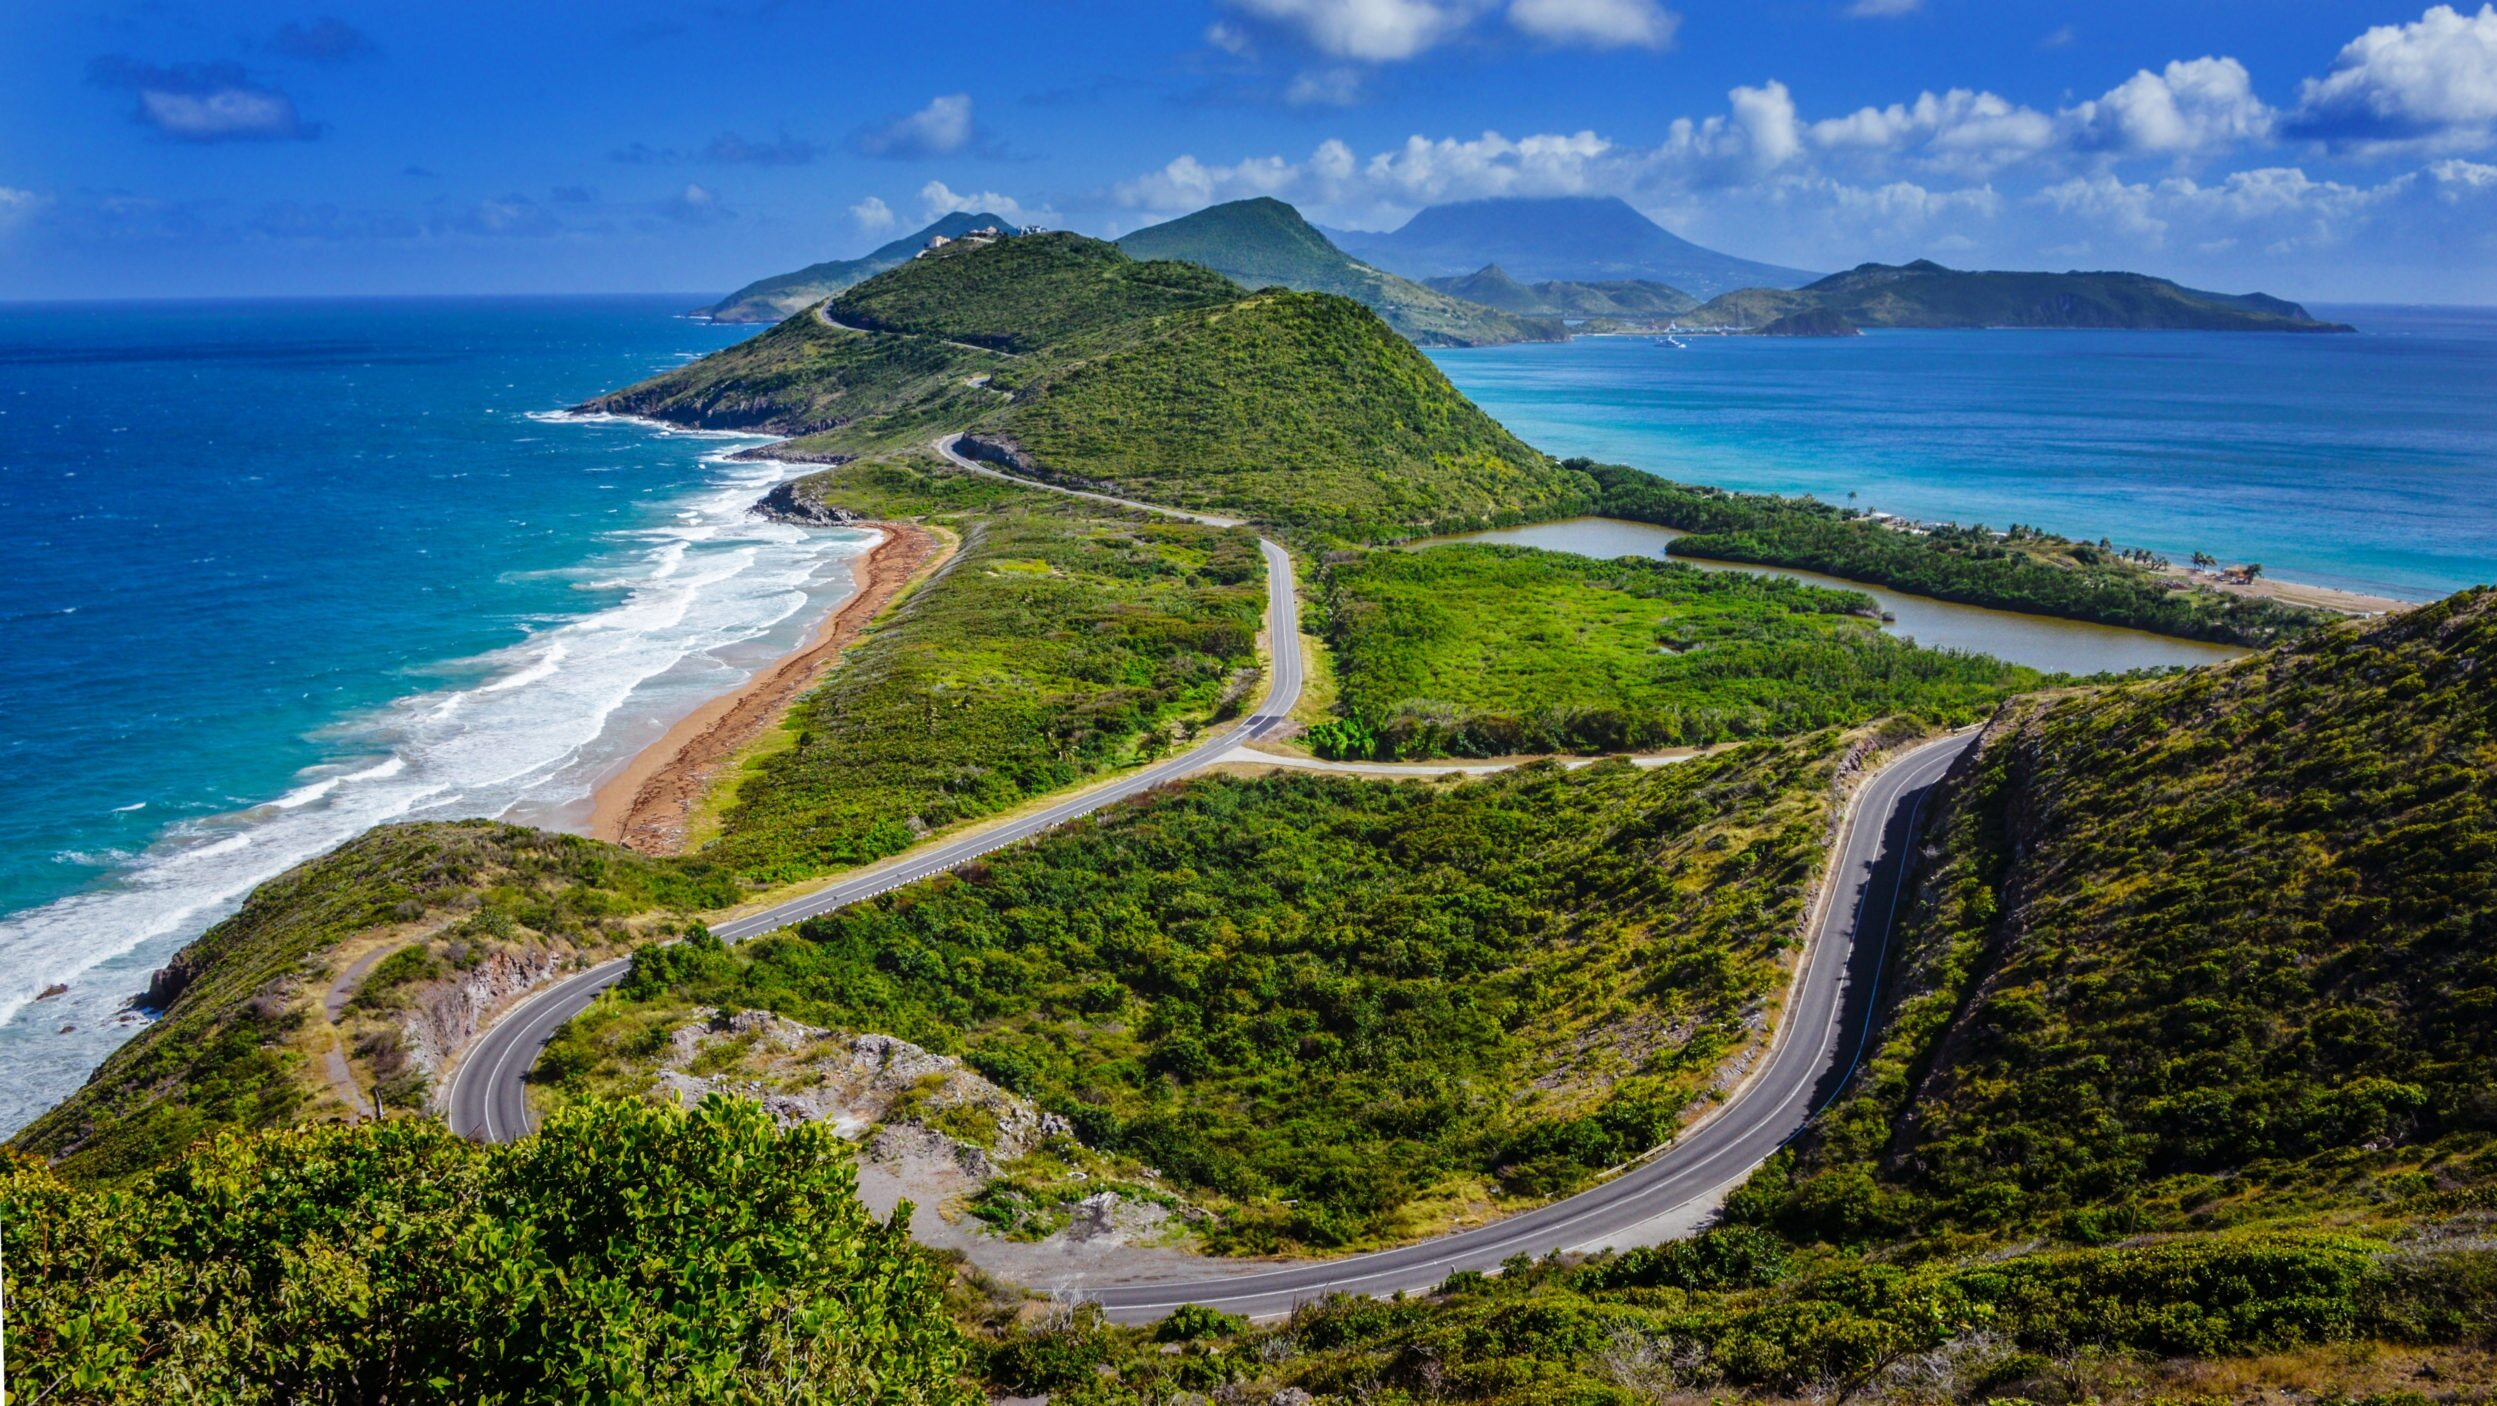 """The St. Kitts and Nevis Observer, """"HMP Has Strict Measures to Avoid COVID-19 Outbreak,"""" 16 May 2021, https://www.thestkittsnevisobserver.com/hmp-has-strict-measures-to-avoid-covid-19-outbreak/"""